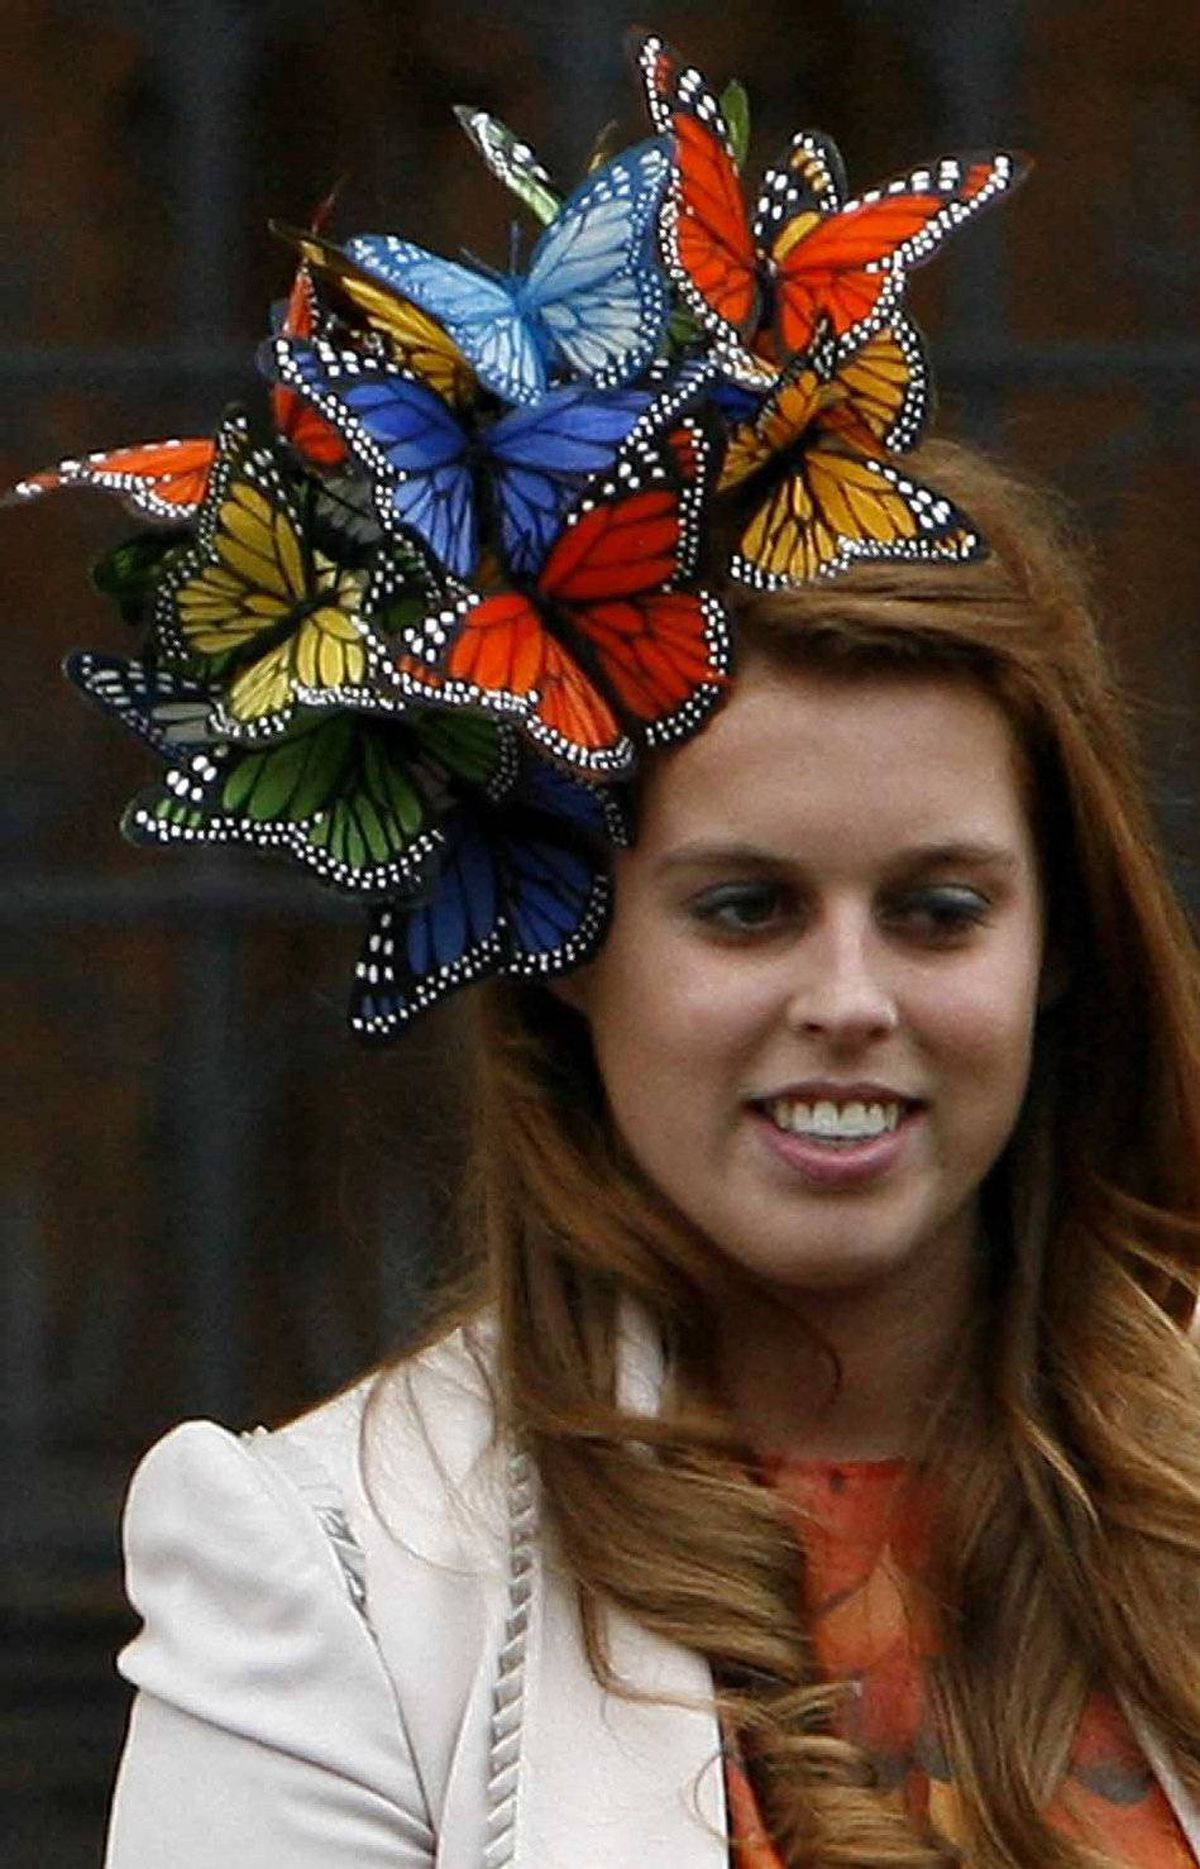 Britain's Princess Beatrice leaves St George's Chapel in Windsor, England, after the wedding of Peter Phillips, grandson of Britain's Queen Elizabeth II and Canadian Autumn Kelly, Saturday May 17, 2008.